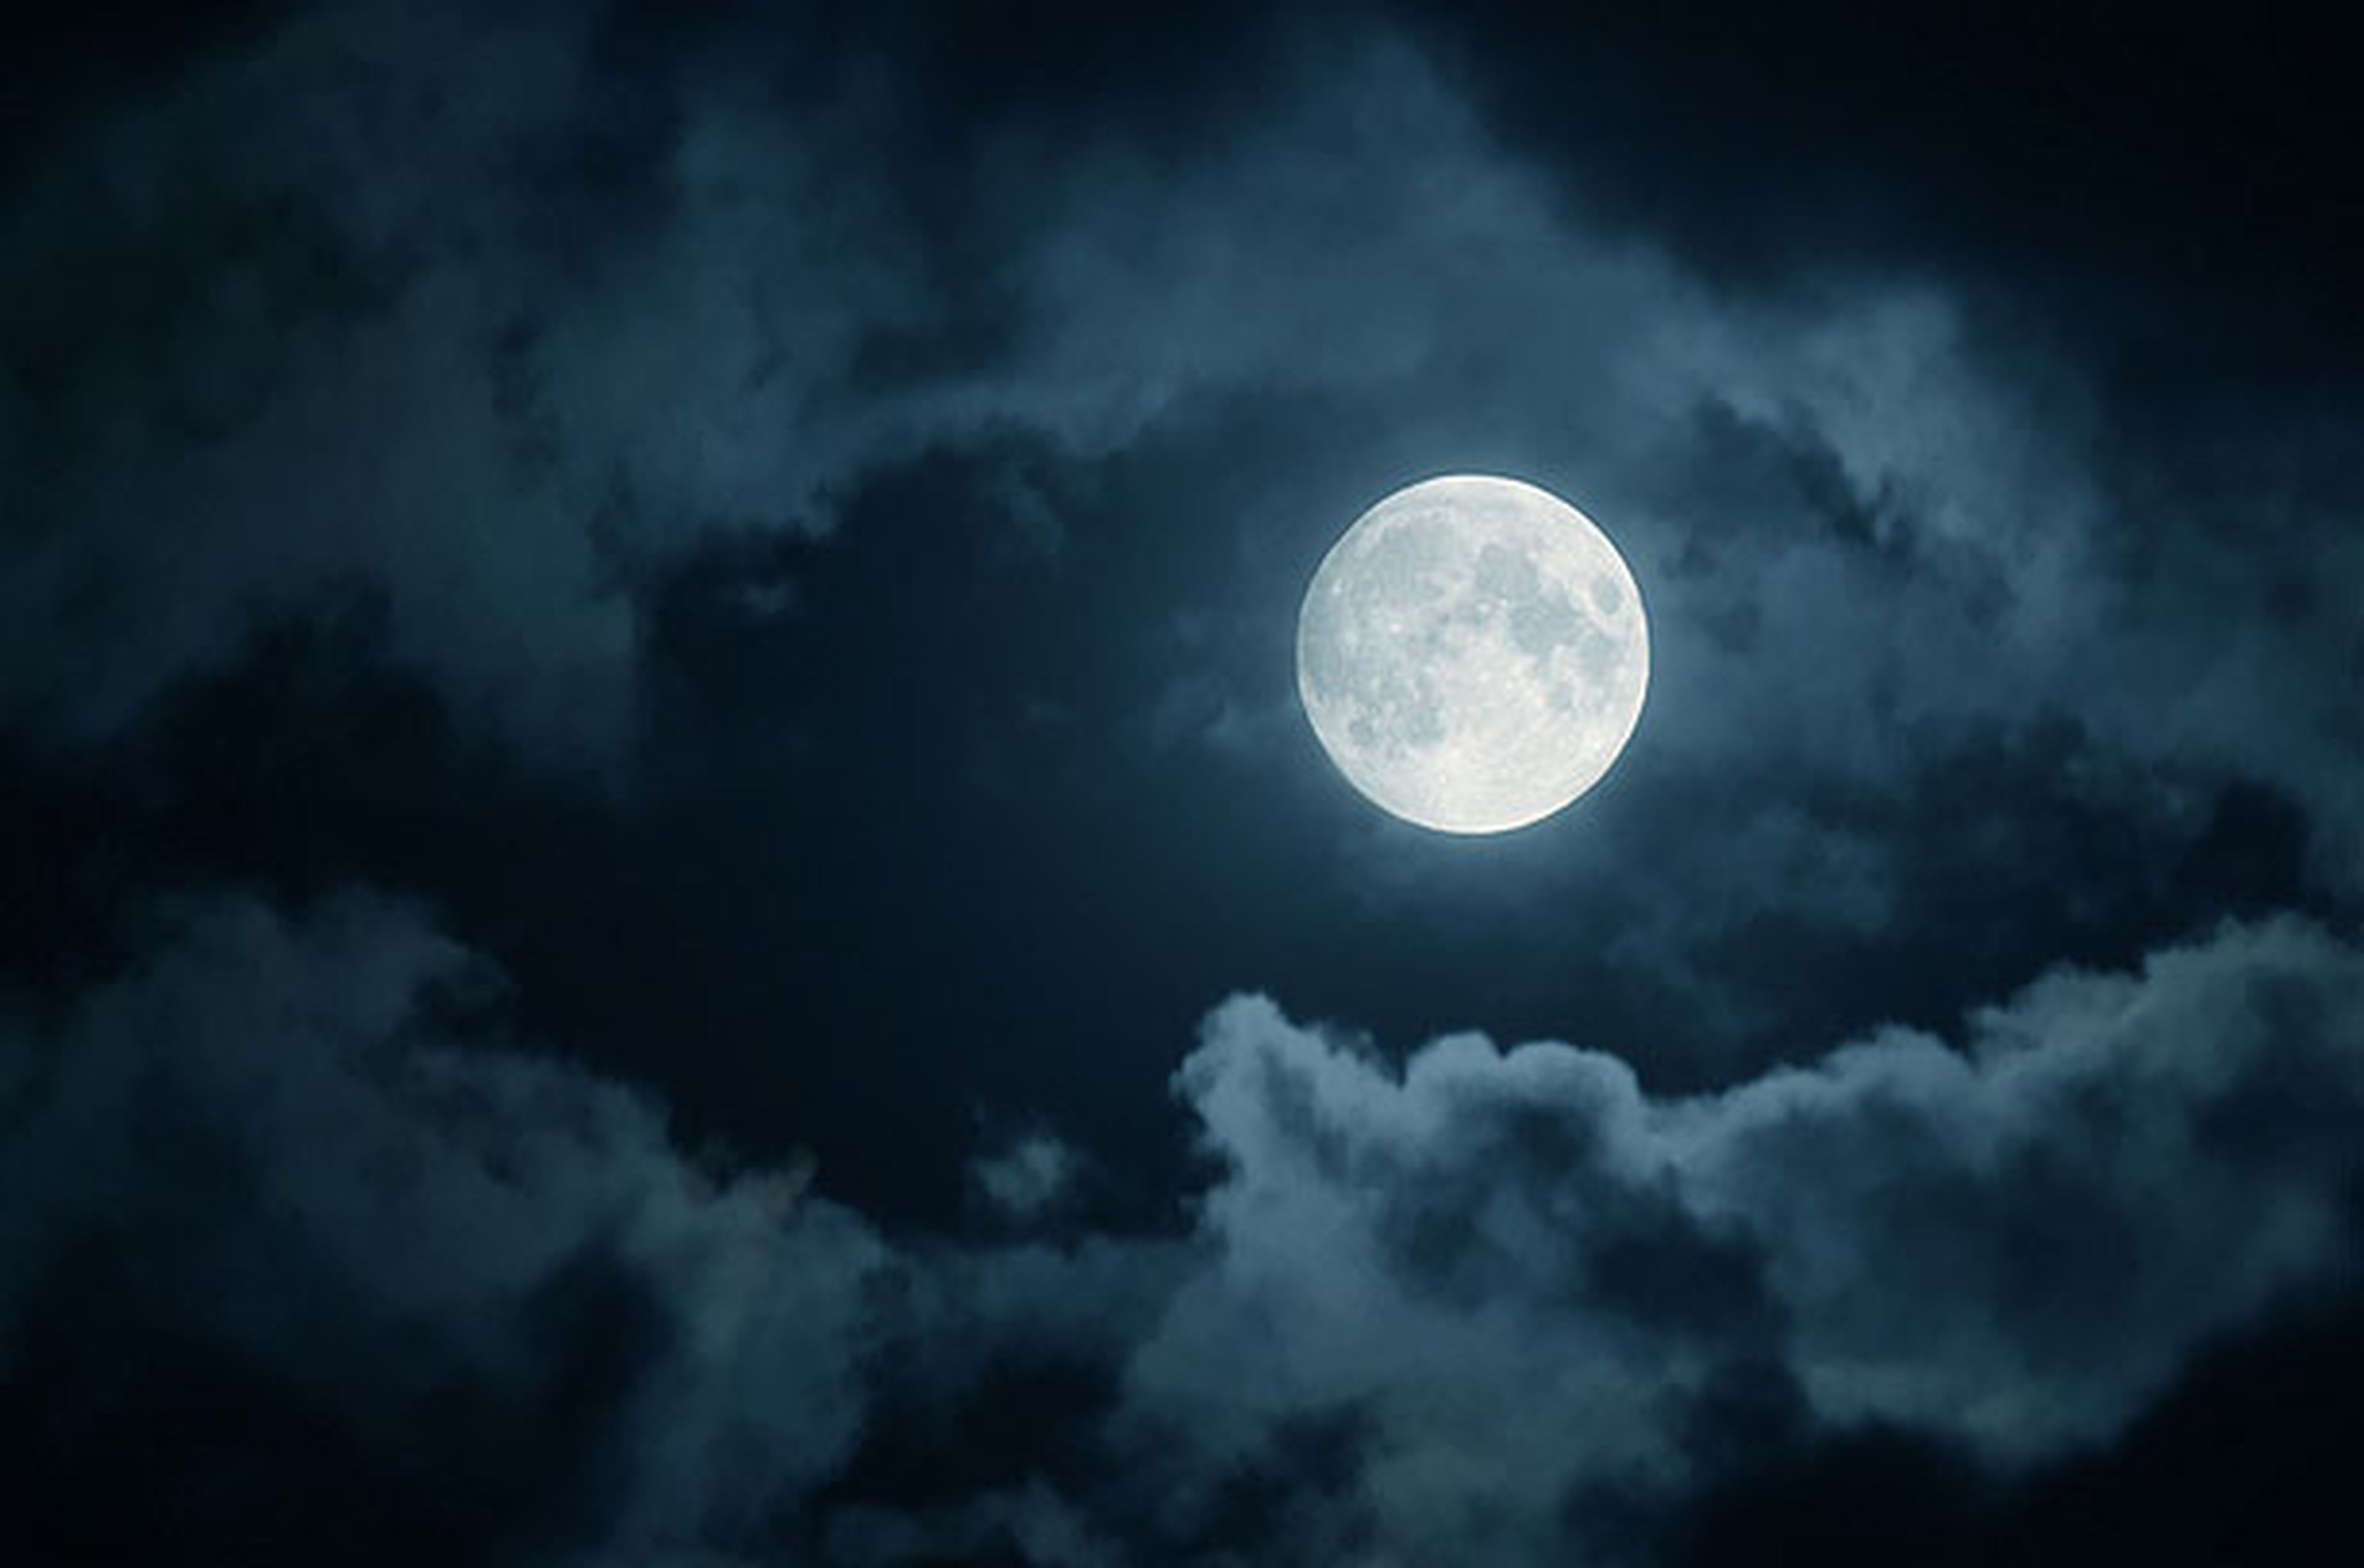 moon, sky, low angle view, astronomy, full moon, beauty in nature, scenics, planetary moon, tranquility, tranquil scene, nature, sky only, cloud - sky, night, space exploration, majestic, circle, idyllic, moon surface, cloudy